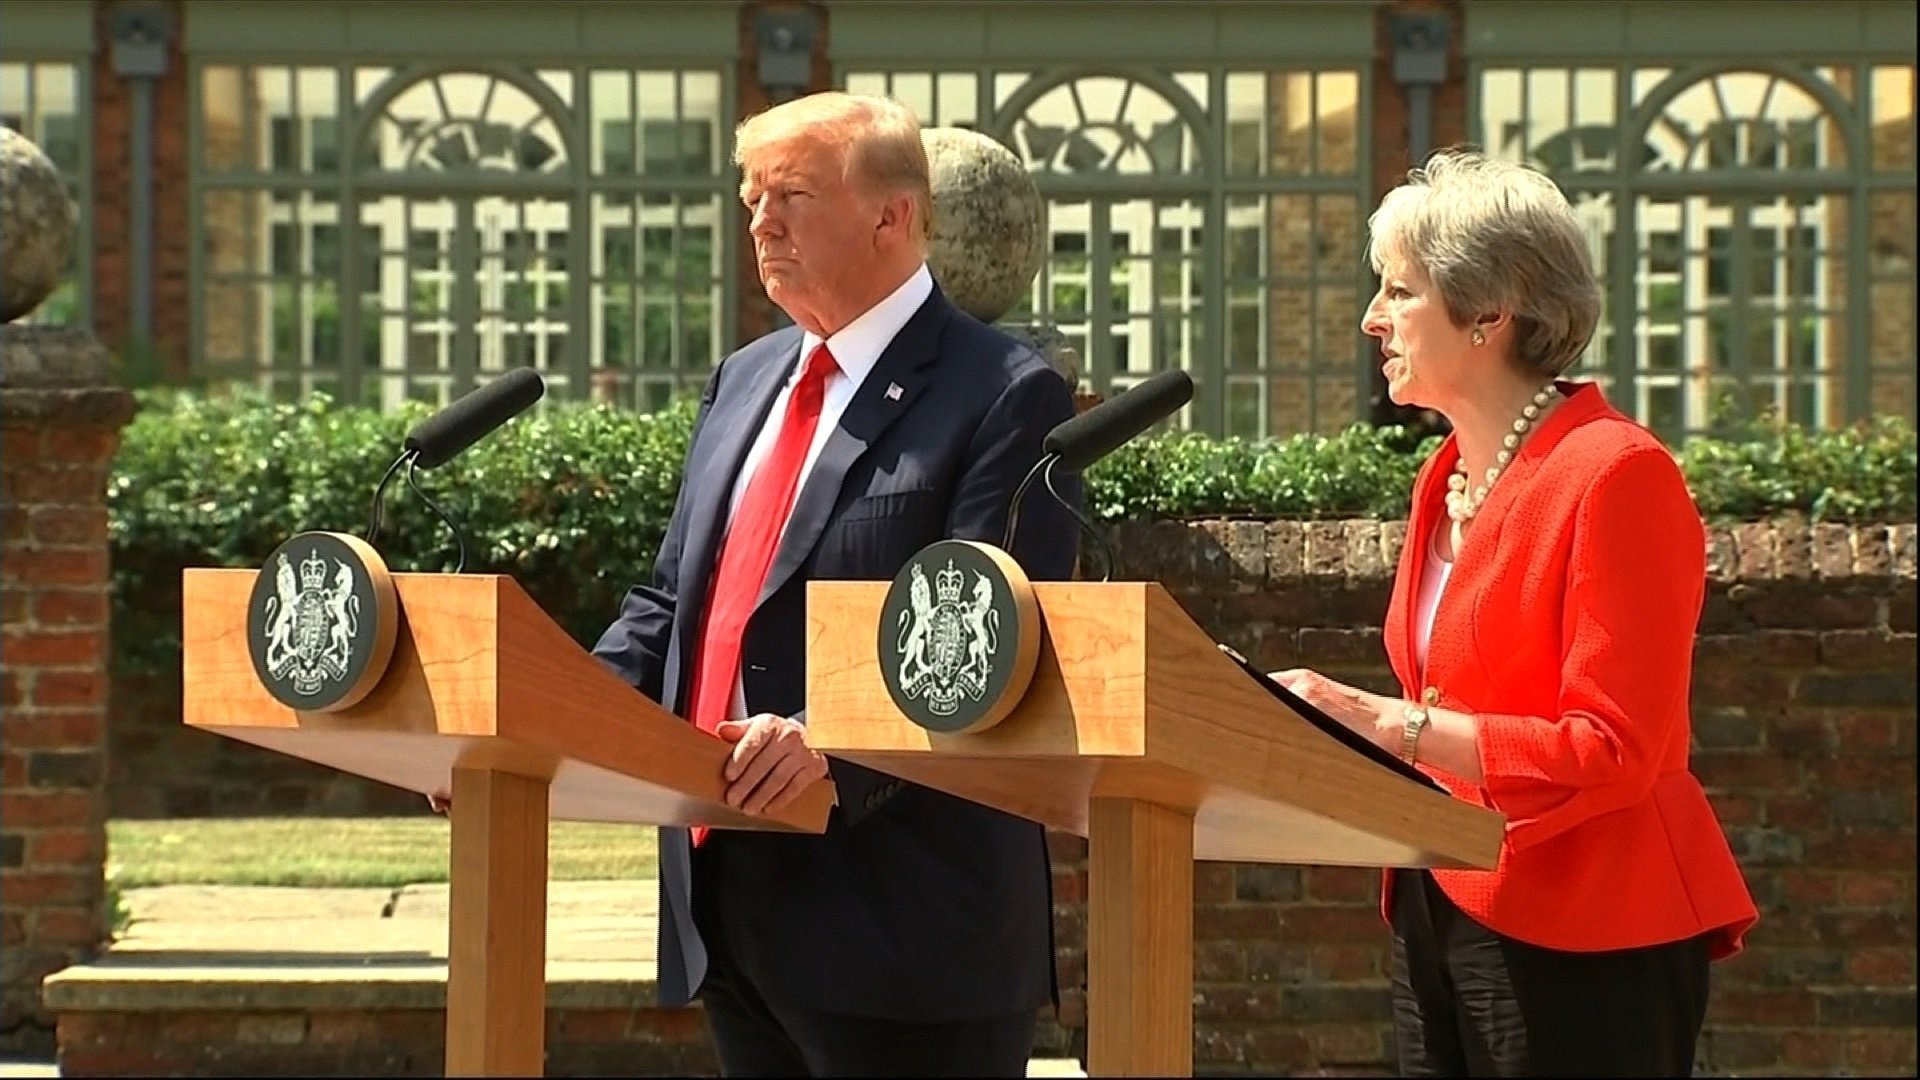 Donald Trump told me to sue the European Union , says Theresa May